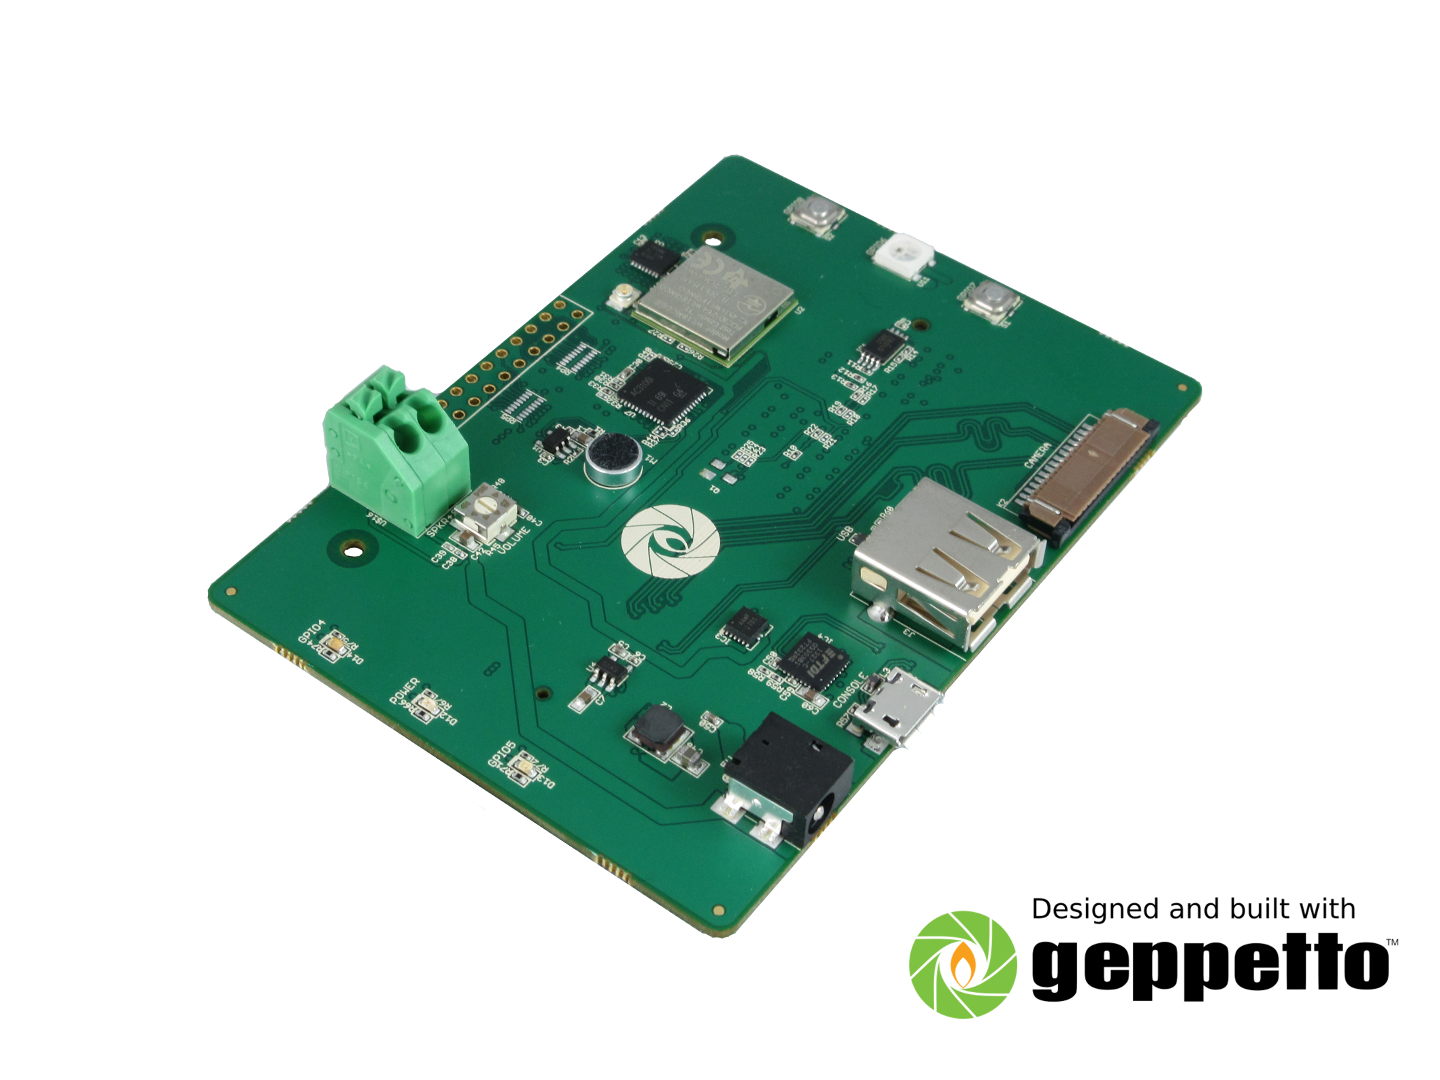 Gumstix Chatterbox for Raspberry Pi® Compute